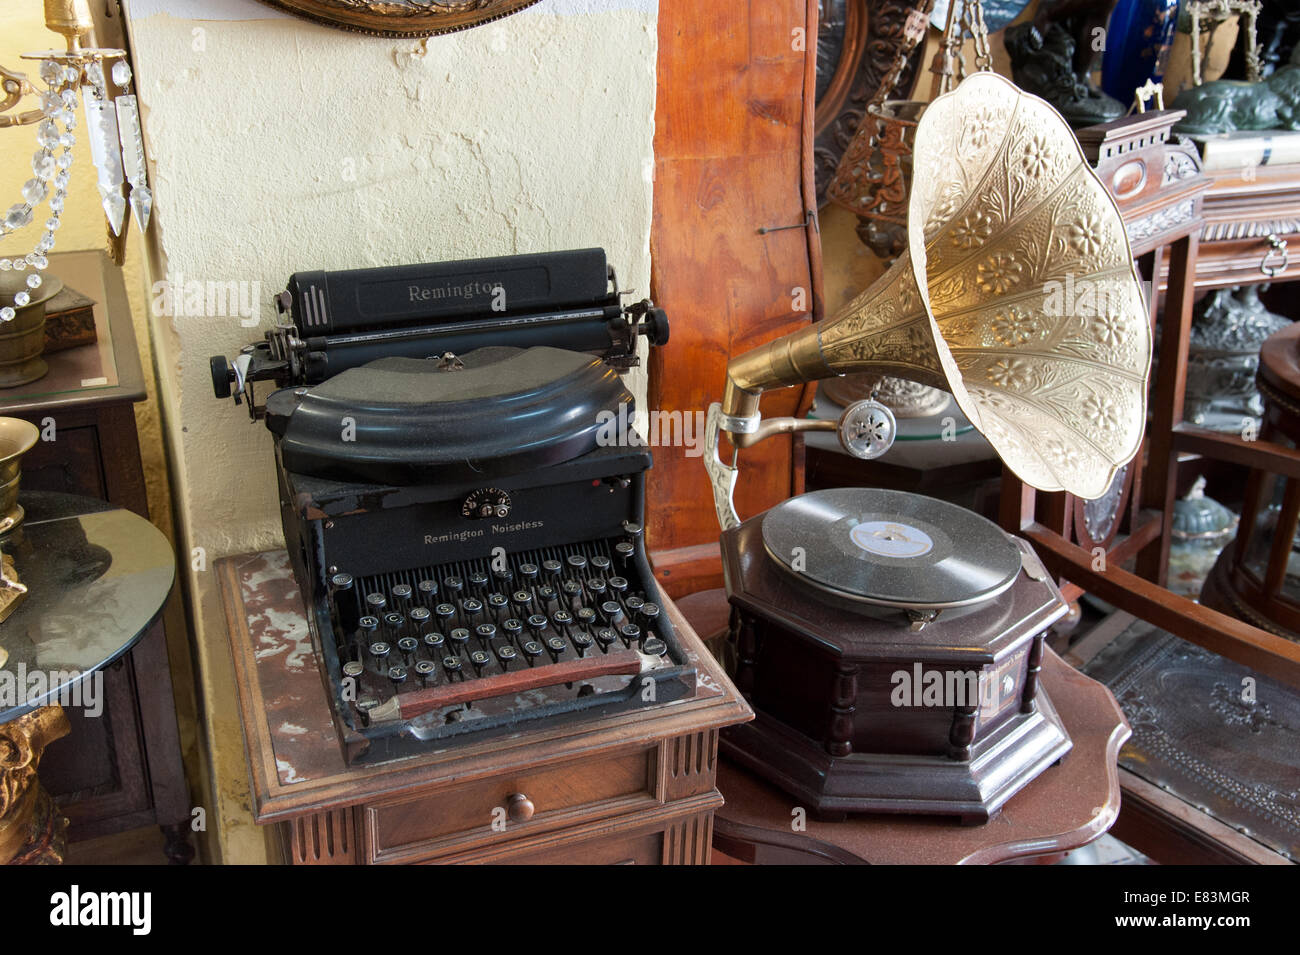 Old typewriter and gramophone player in an antiques shop, Spain - Stock Image